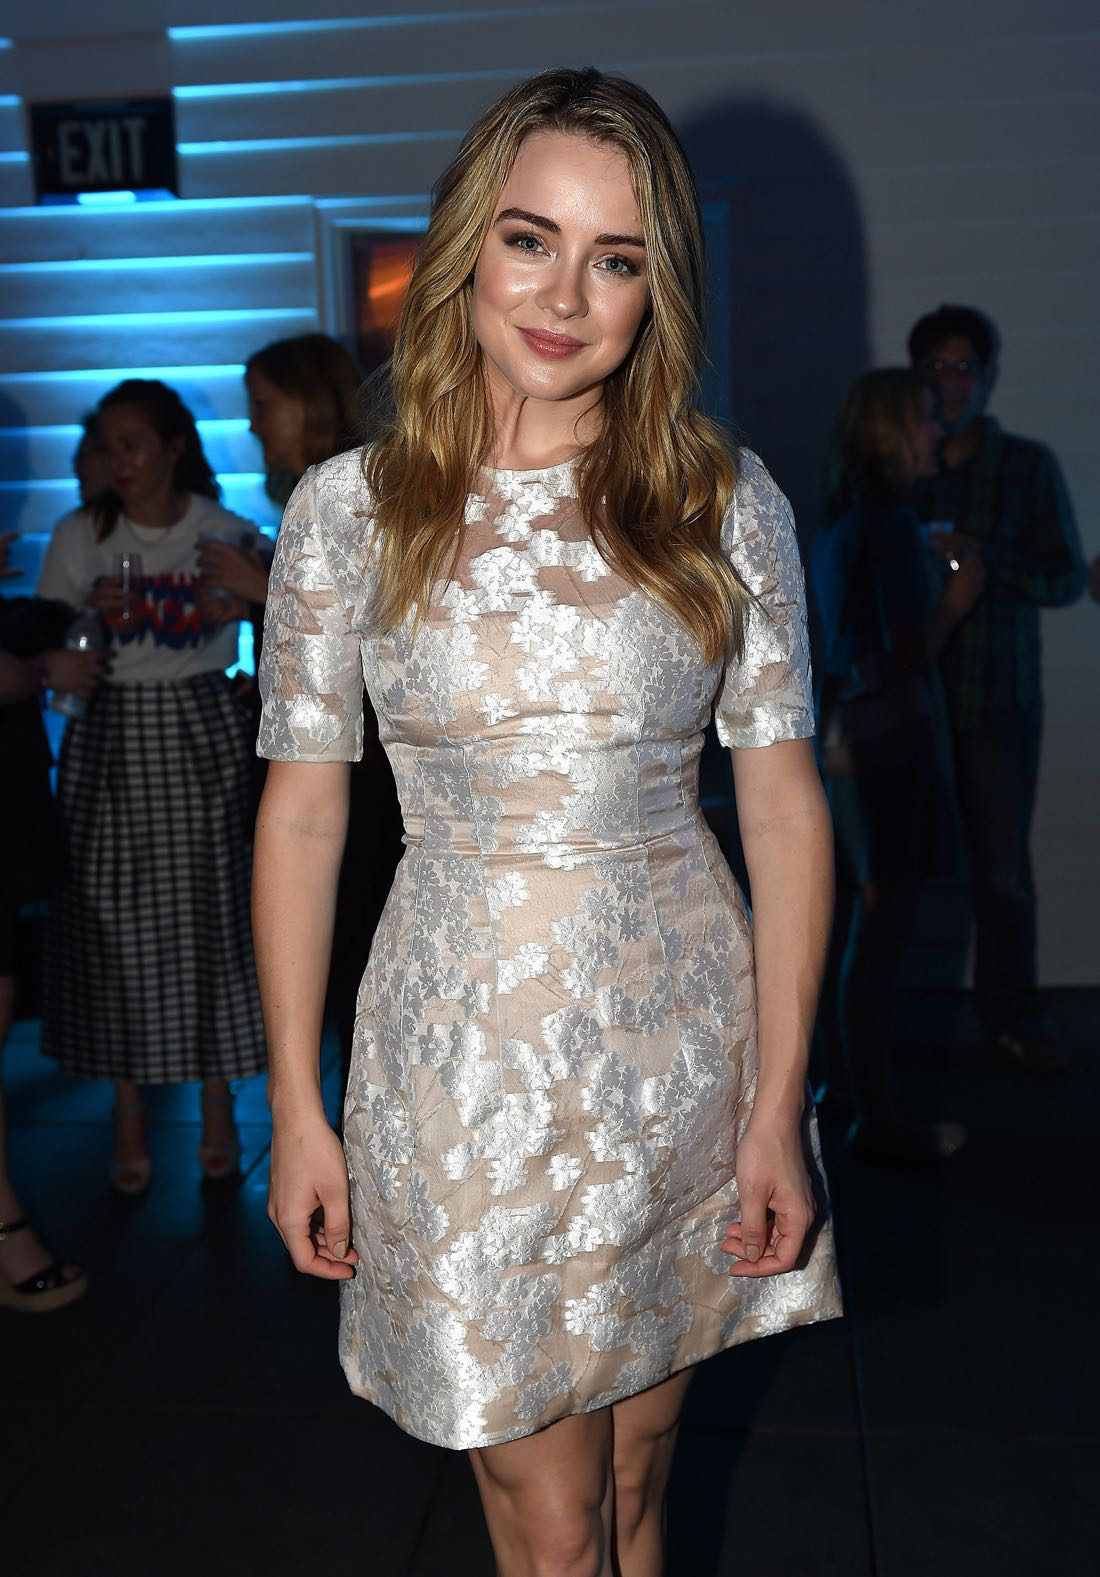 FOX FANFARE ALL-STAR COMIC CON PARTY AT SAN DIEGO COMIC-CON © 2016: Hannah Kasulka attend the FOX FANFARE ALL-STAR COMIC CON PARTY AT SAN DIEGO COMIC-CON © 2016 on Friday, July 22 at the Andaz Hotel in San Diego, CA. CR: Frank Micelotta/FOX © 2016 FOX BROADCASTING